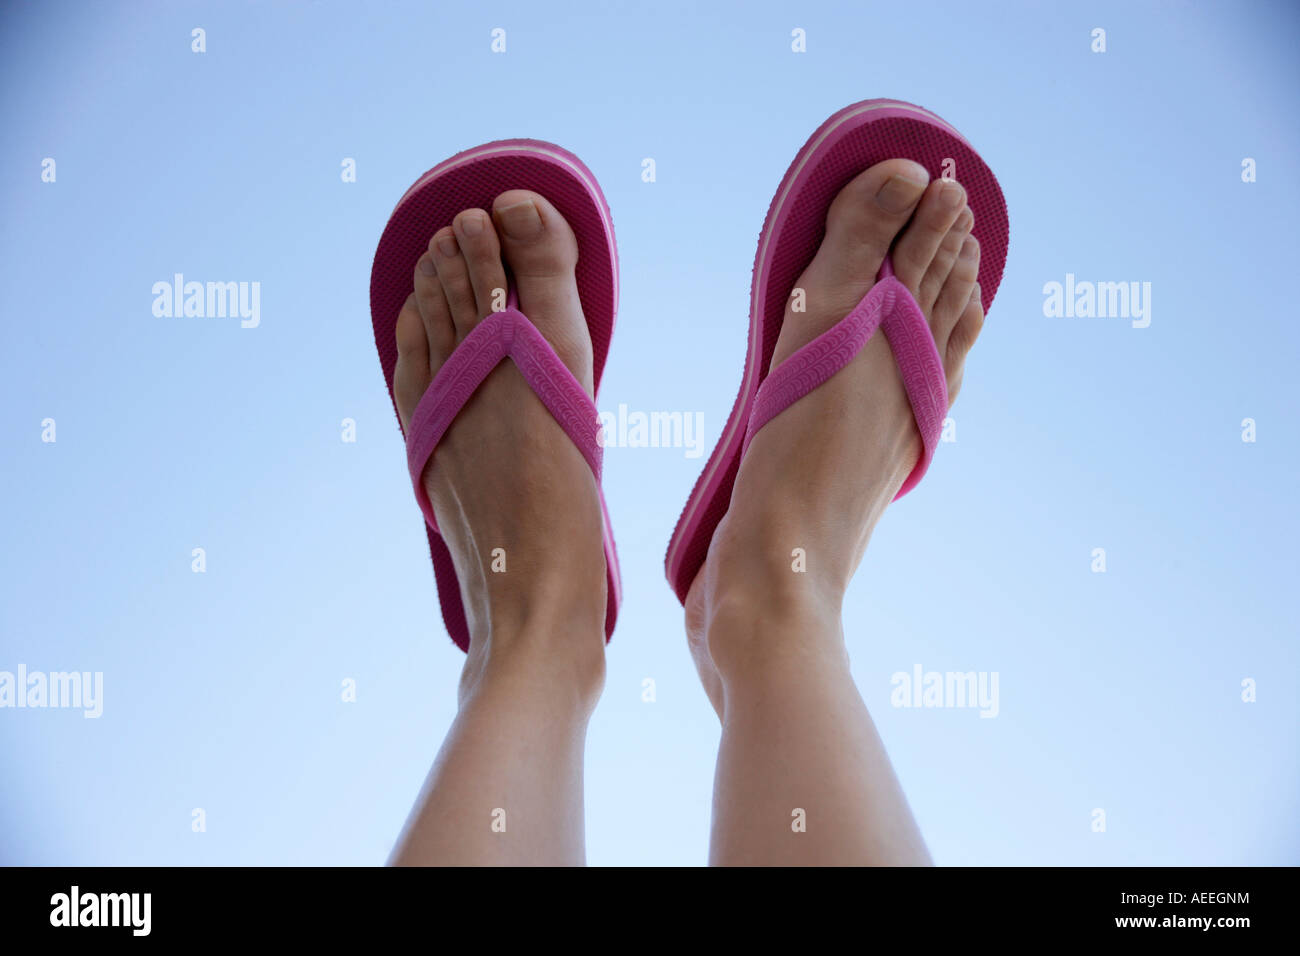 Pair of feet in flip-flops against blue sky - Stock Image